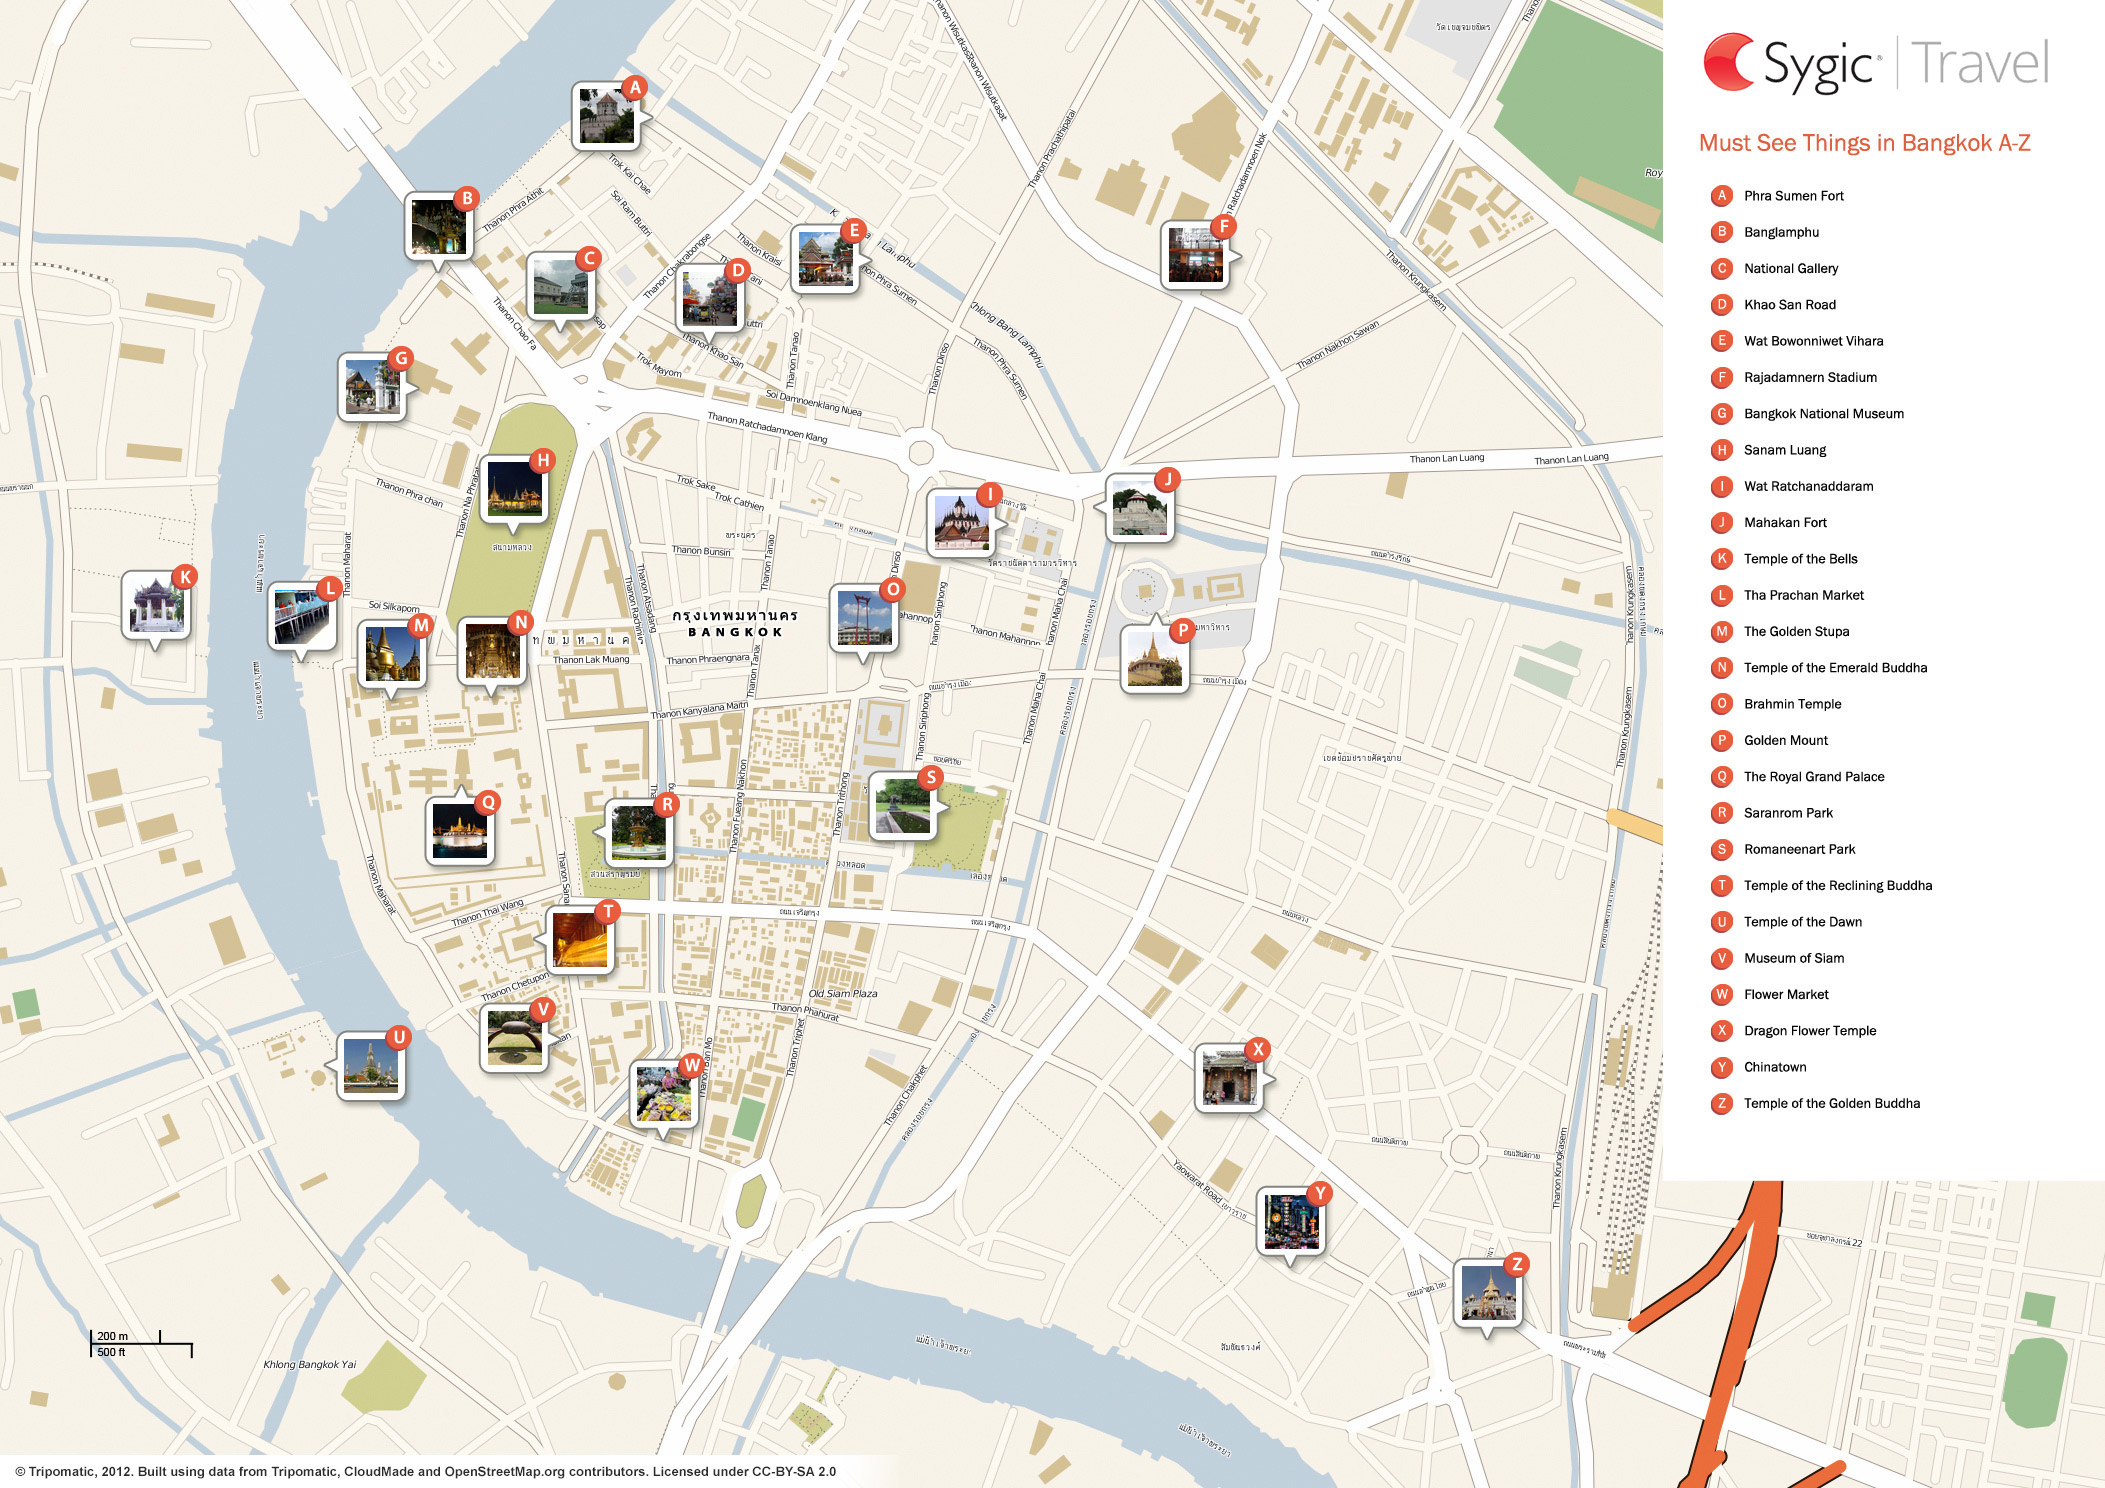 Complete Tourist Attractions Map of Bangkok Thailand – Maps For Travelers